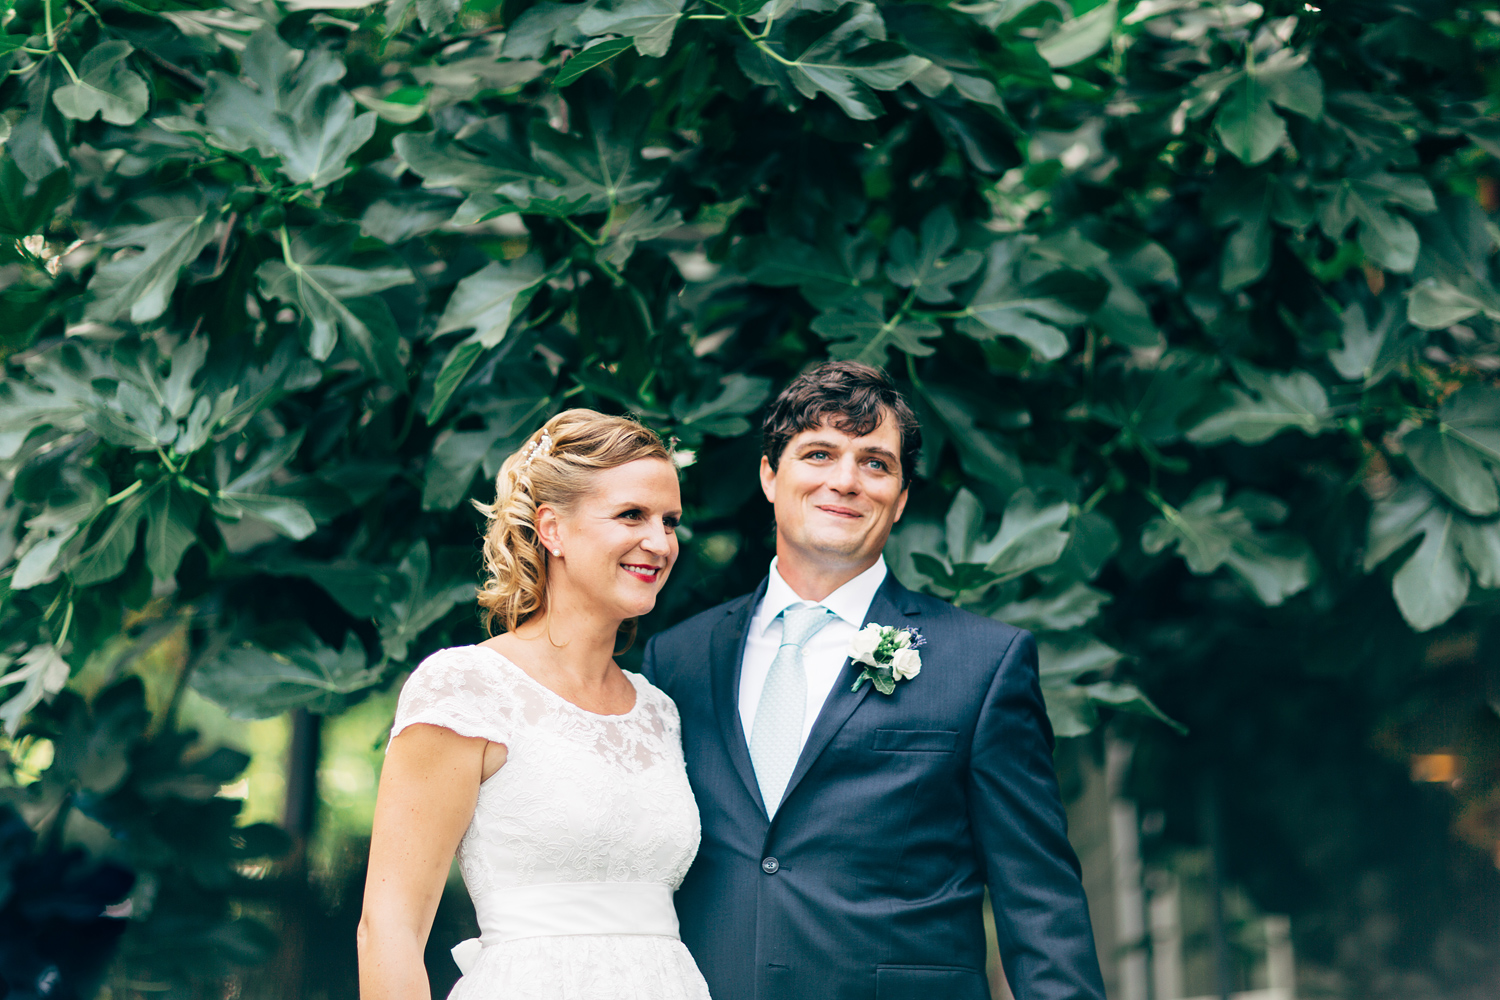 ryan-flynn-photography-best-wedding-photos-2014-0129.JPG